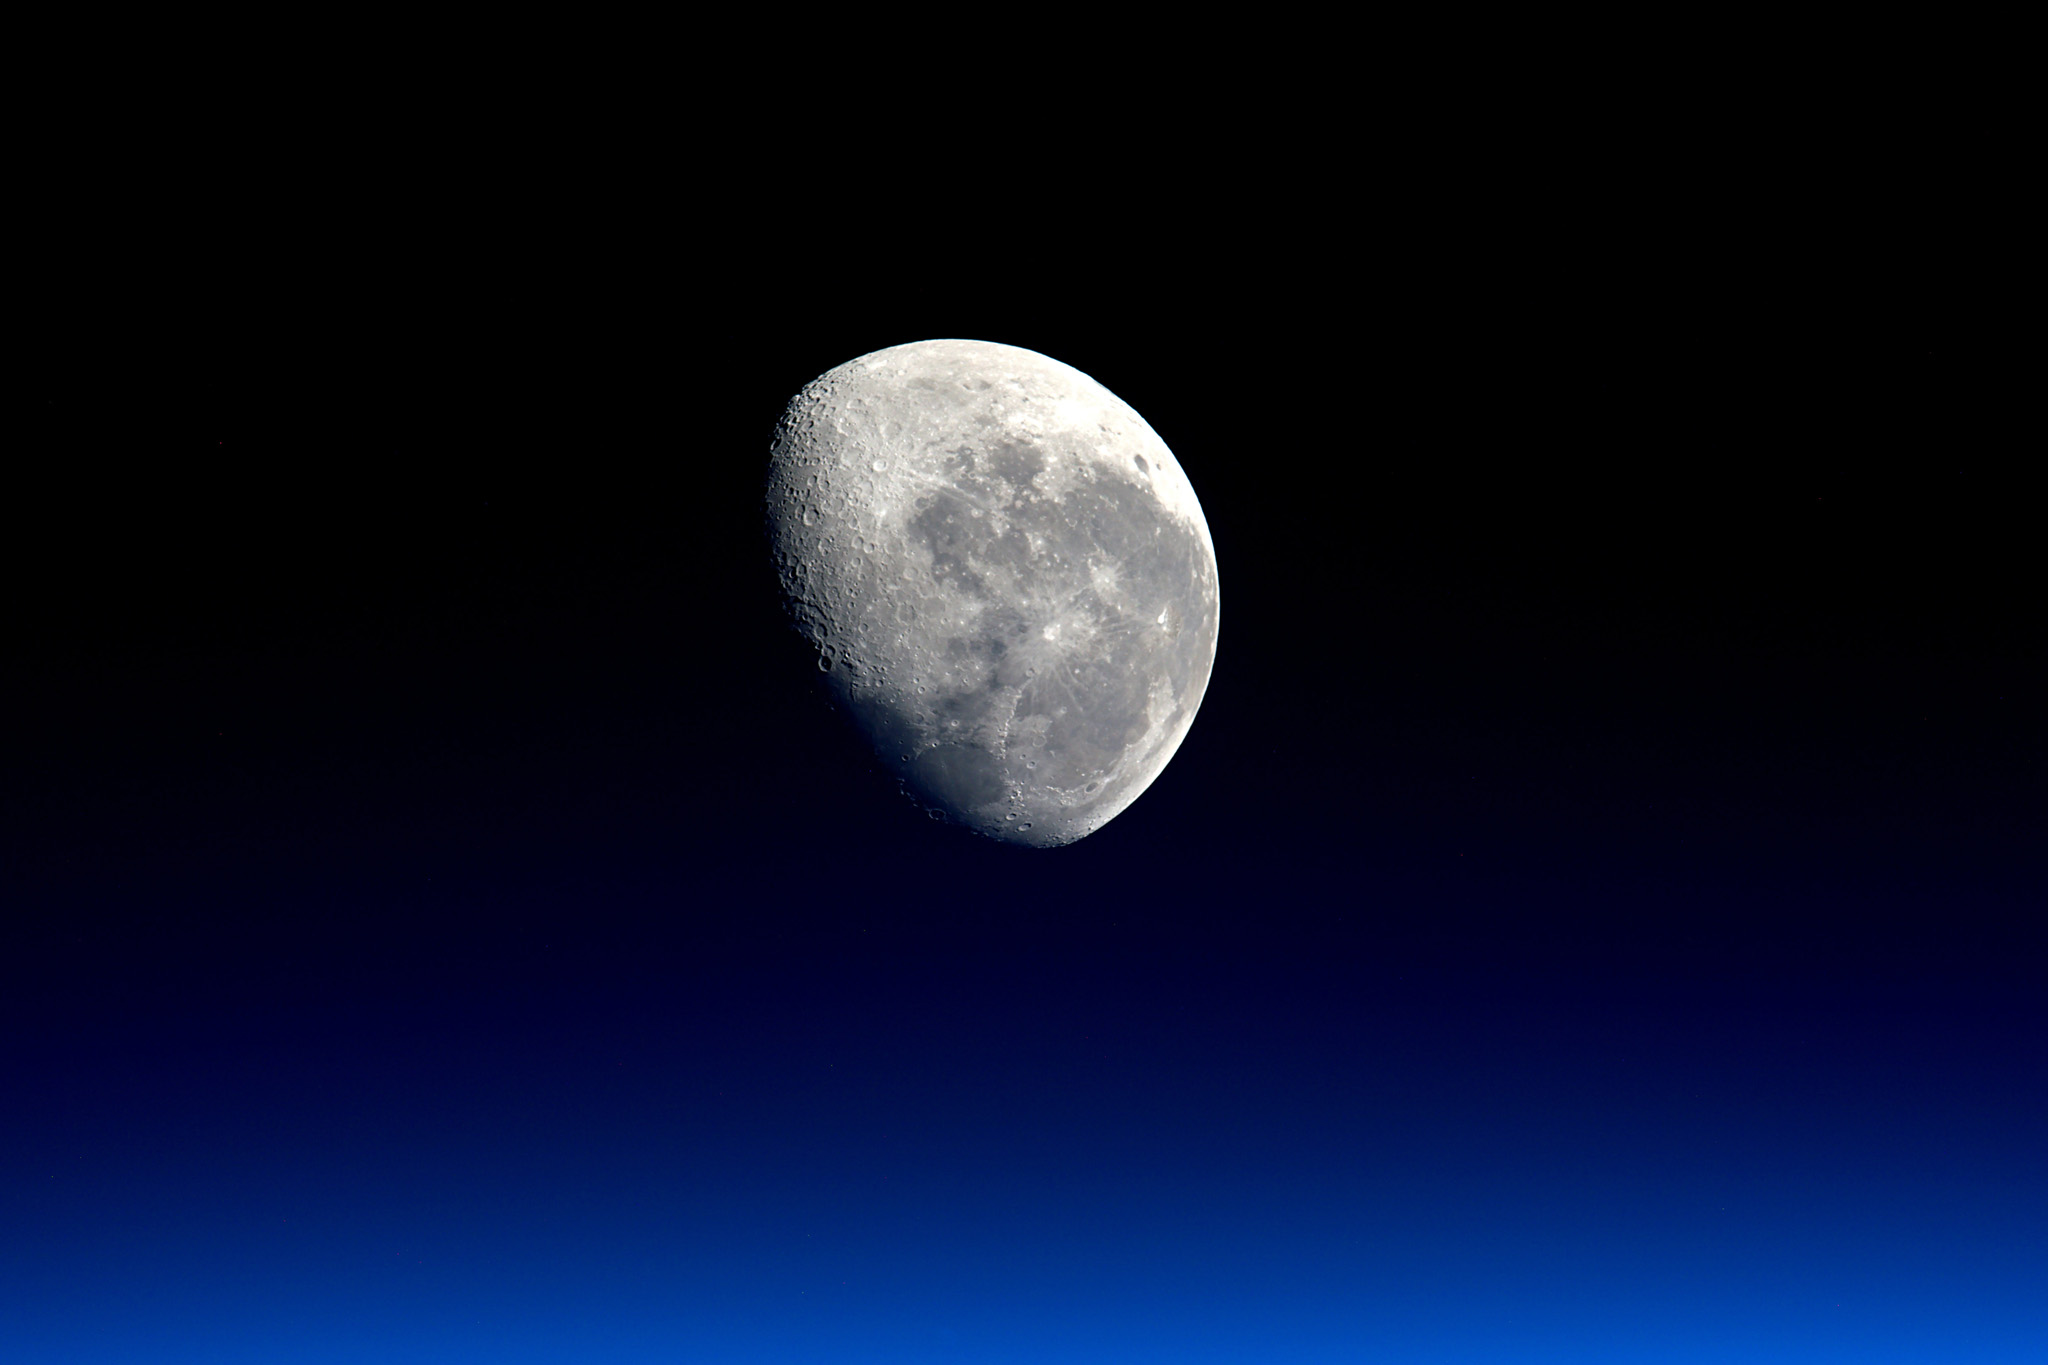 Expedition 47 Flight Engineer Tim Peake ...Expedition 47 Flight Engineer Tim Peake of the European Space Agency took this striking photograph of the moon from his vantage point aboard the International Space Station on March 28, 2016. / AFP PHOTO / ESA/NASA / HandoutHANDOUT/AFP/Getty Images